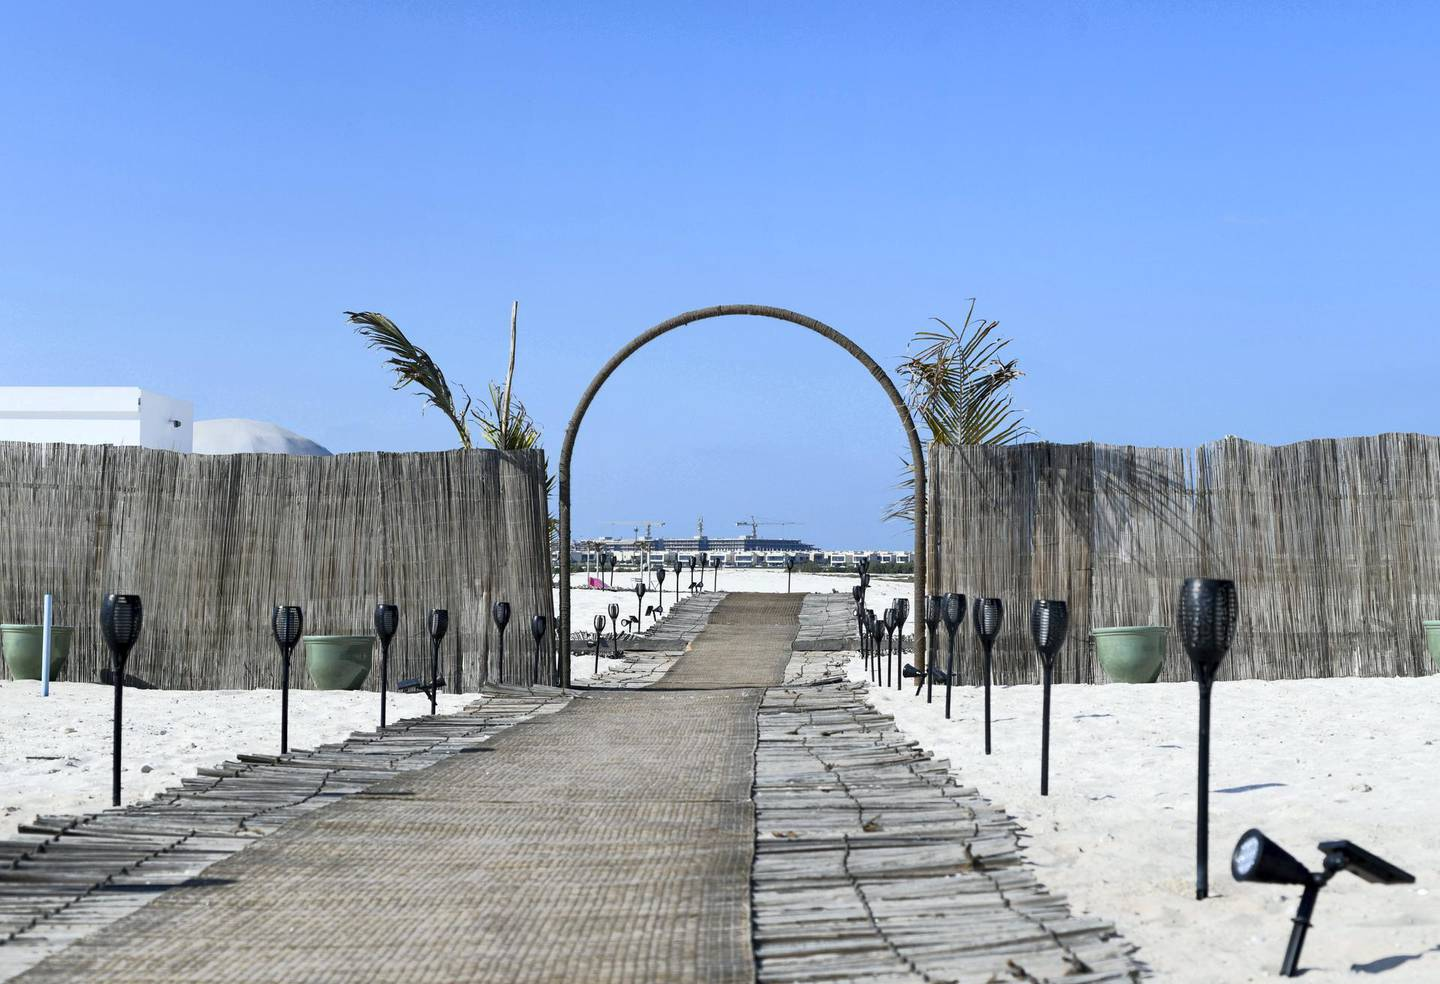 Abu Dhabi, United Arab Emirates - Pure Eco Retreat is an ideal getaway for adults to relax and rejuvenate, tucked away on Jubail Island in the heart of Abu Dhabi city. Khushnum Bhandari for The National